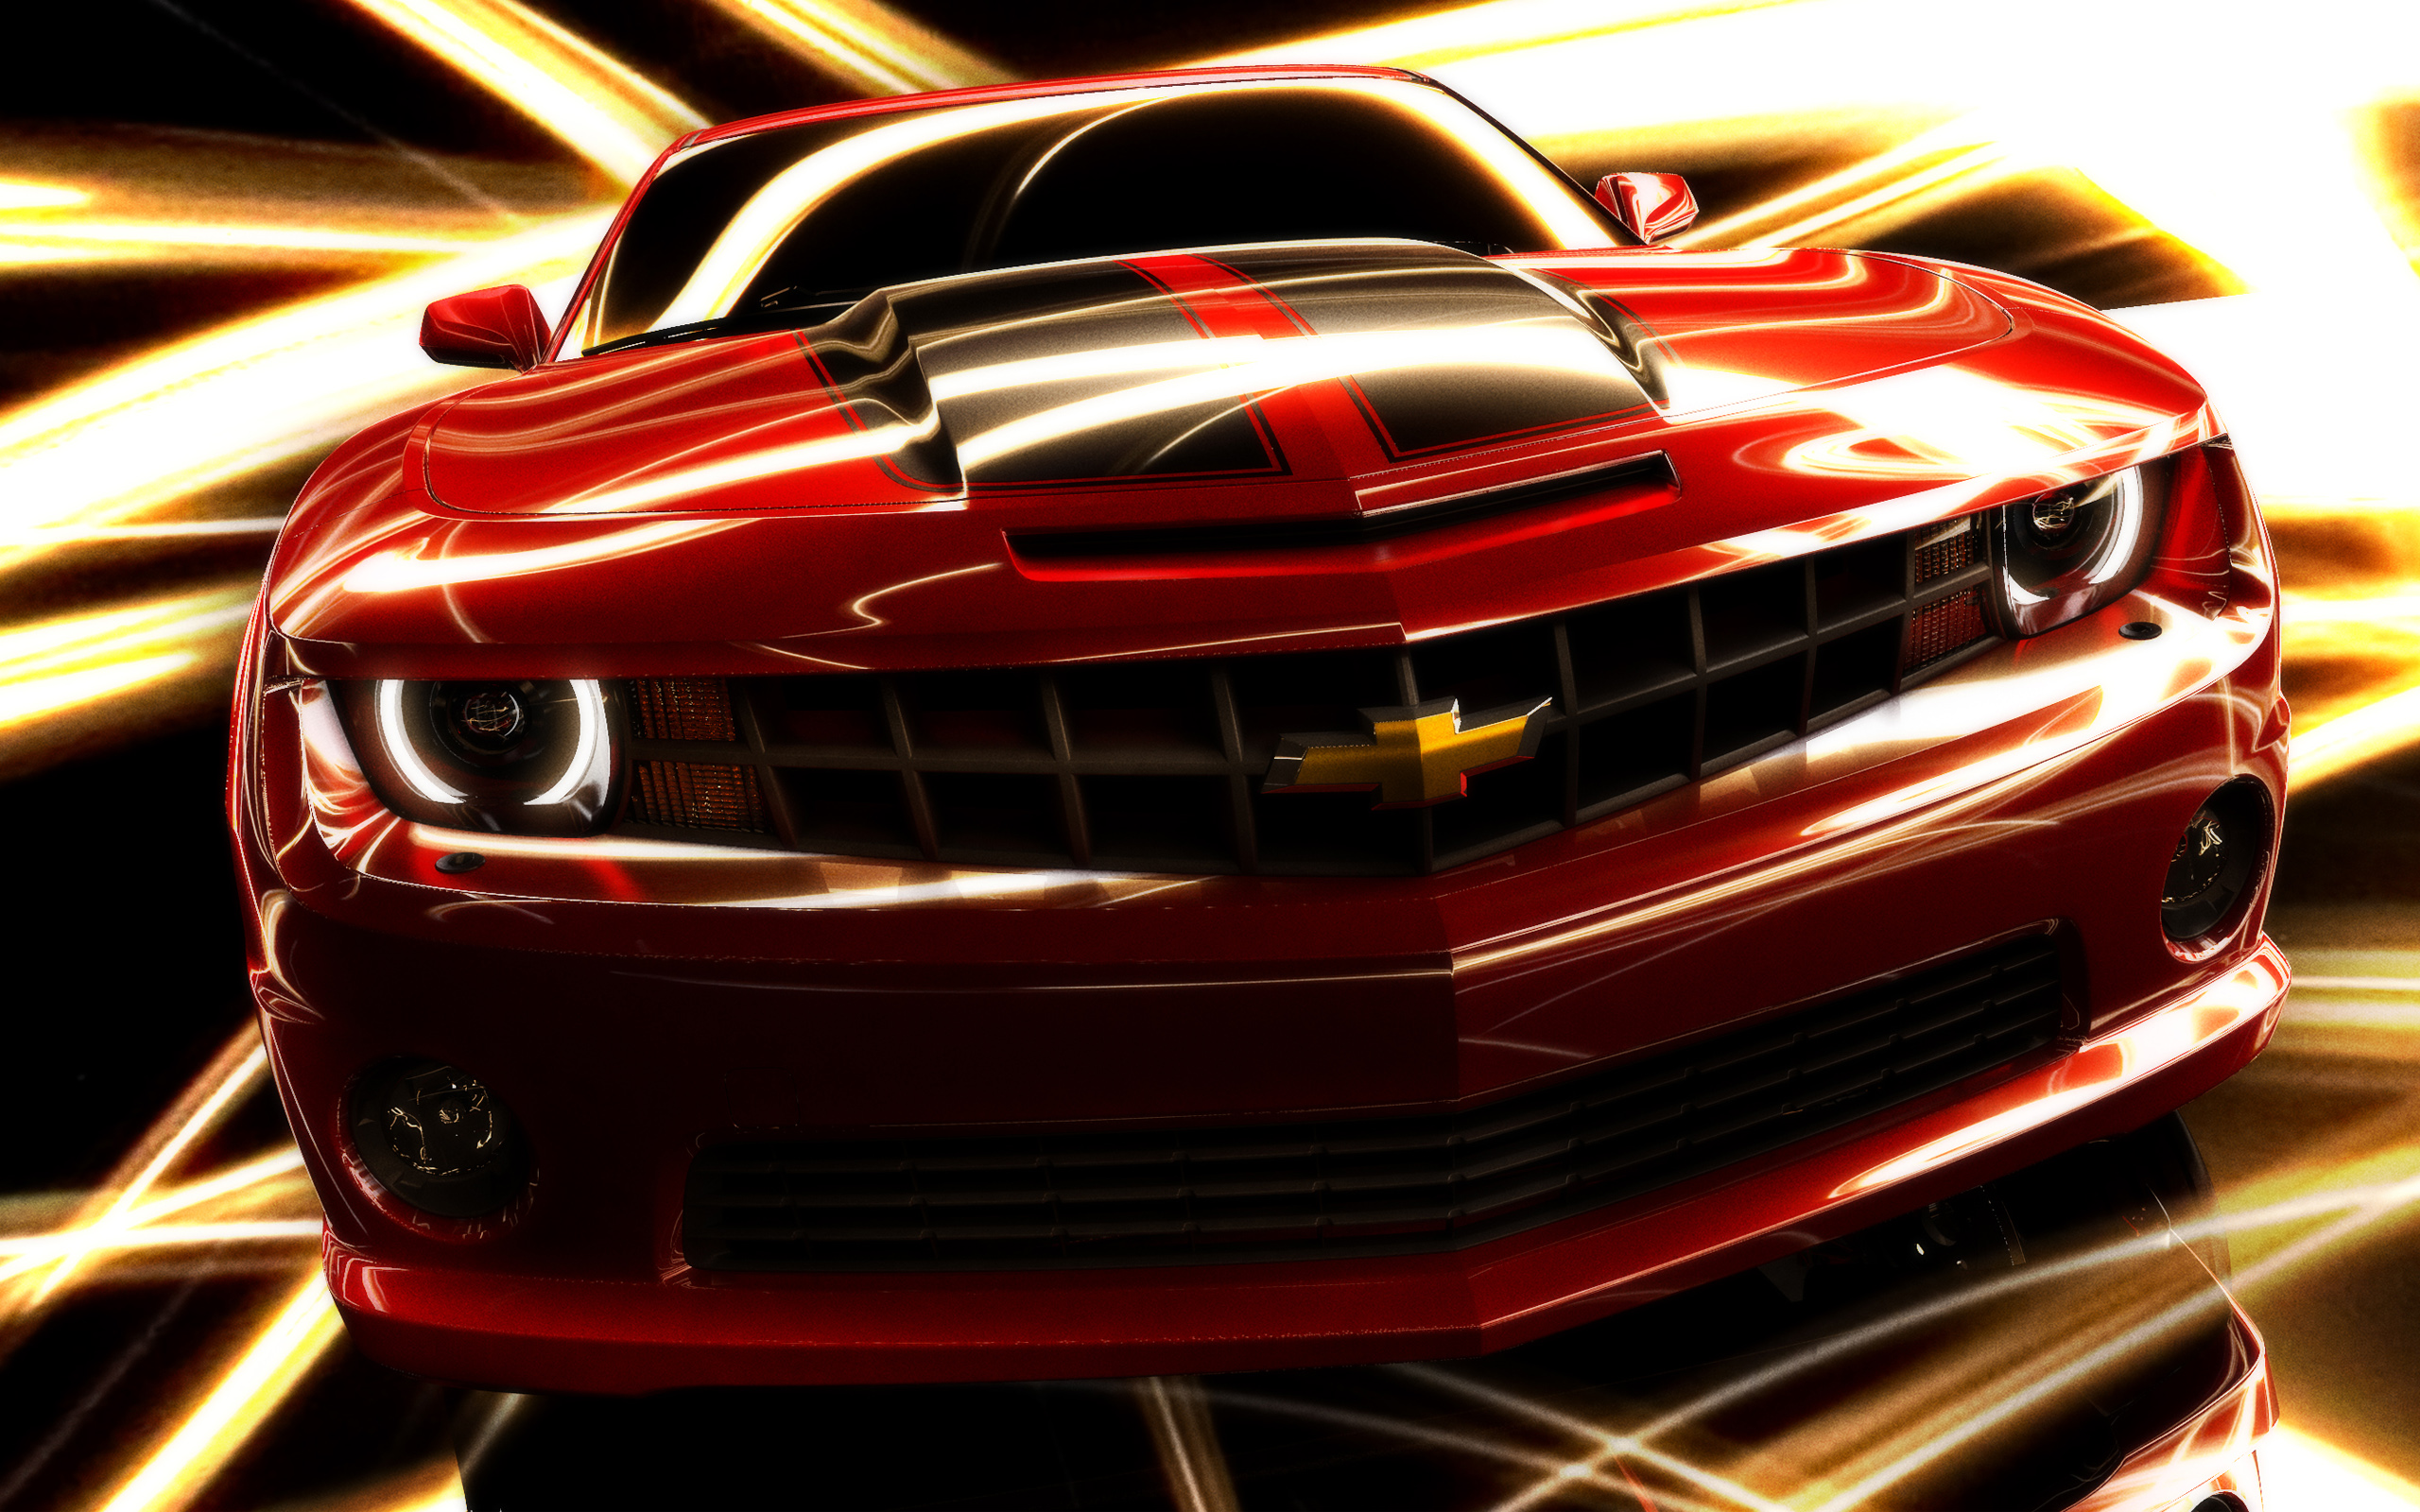 Wallpapers of 2016 Upcoming Car 1 Chevrolet Camaro 2016 New Car 2560x1600